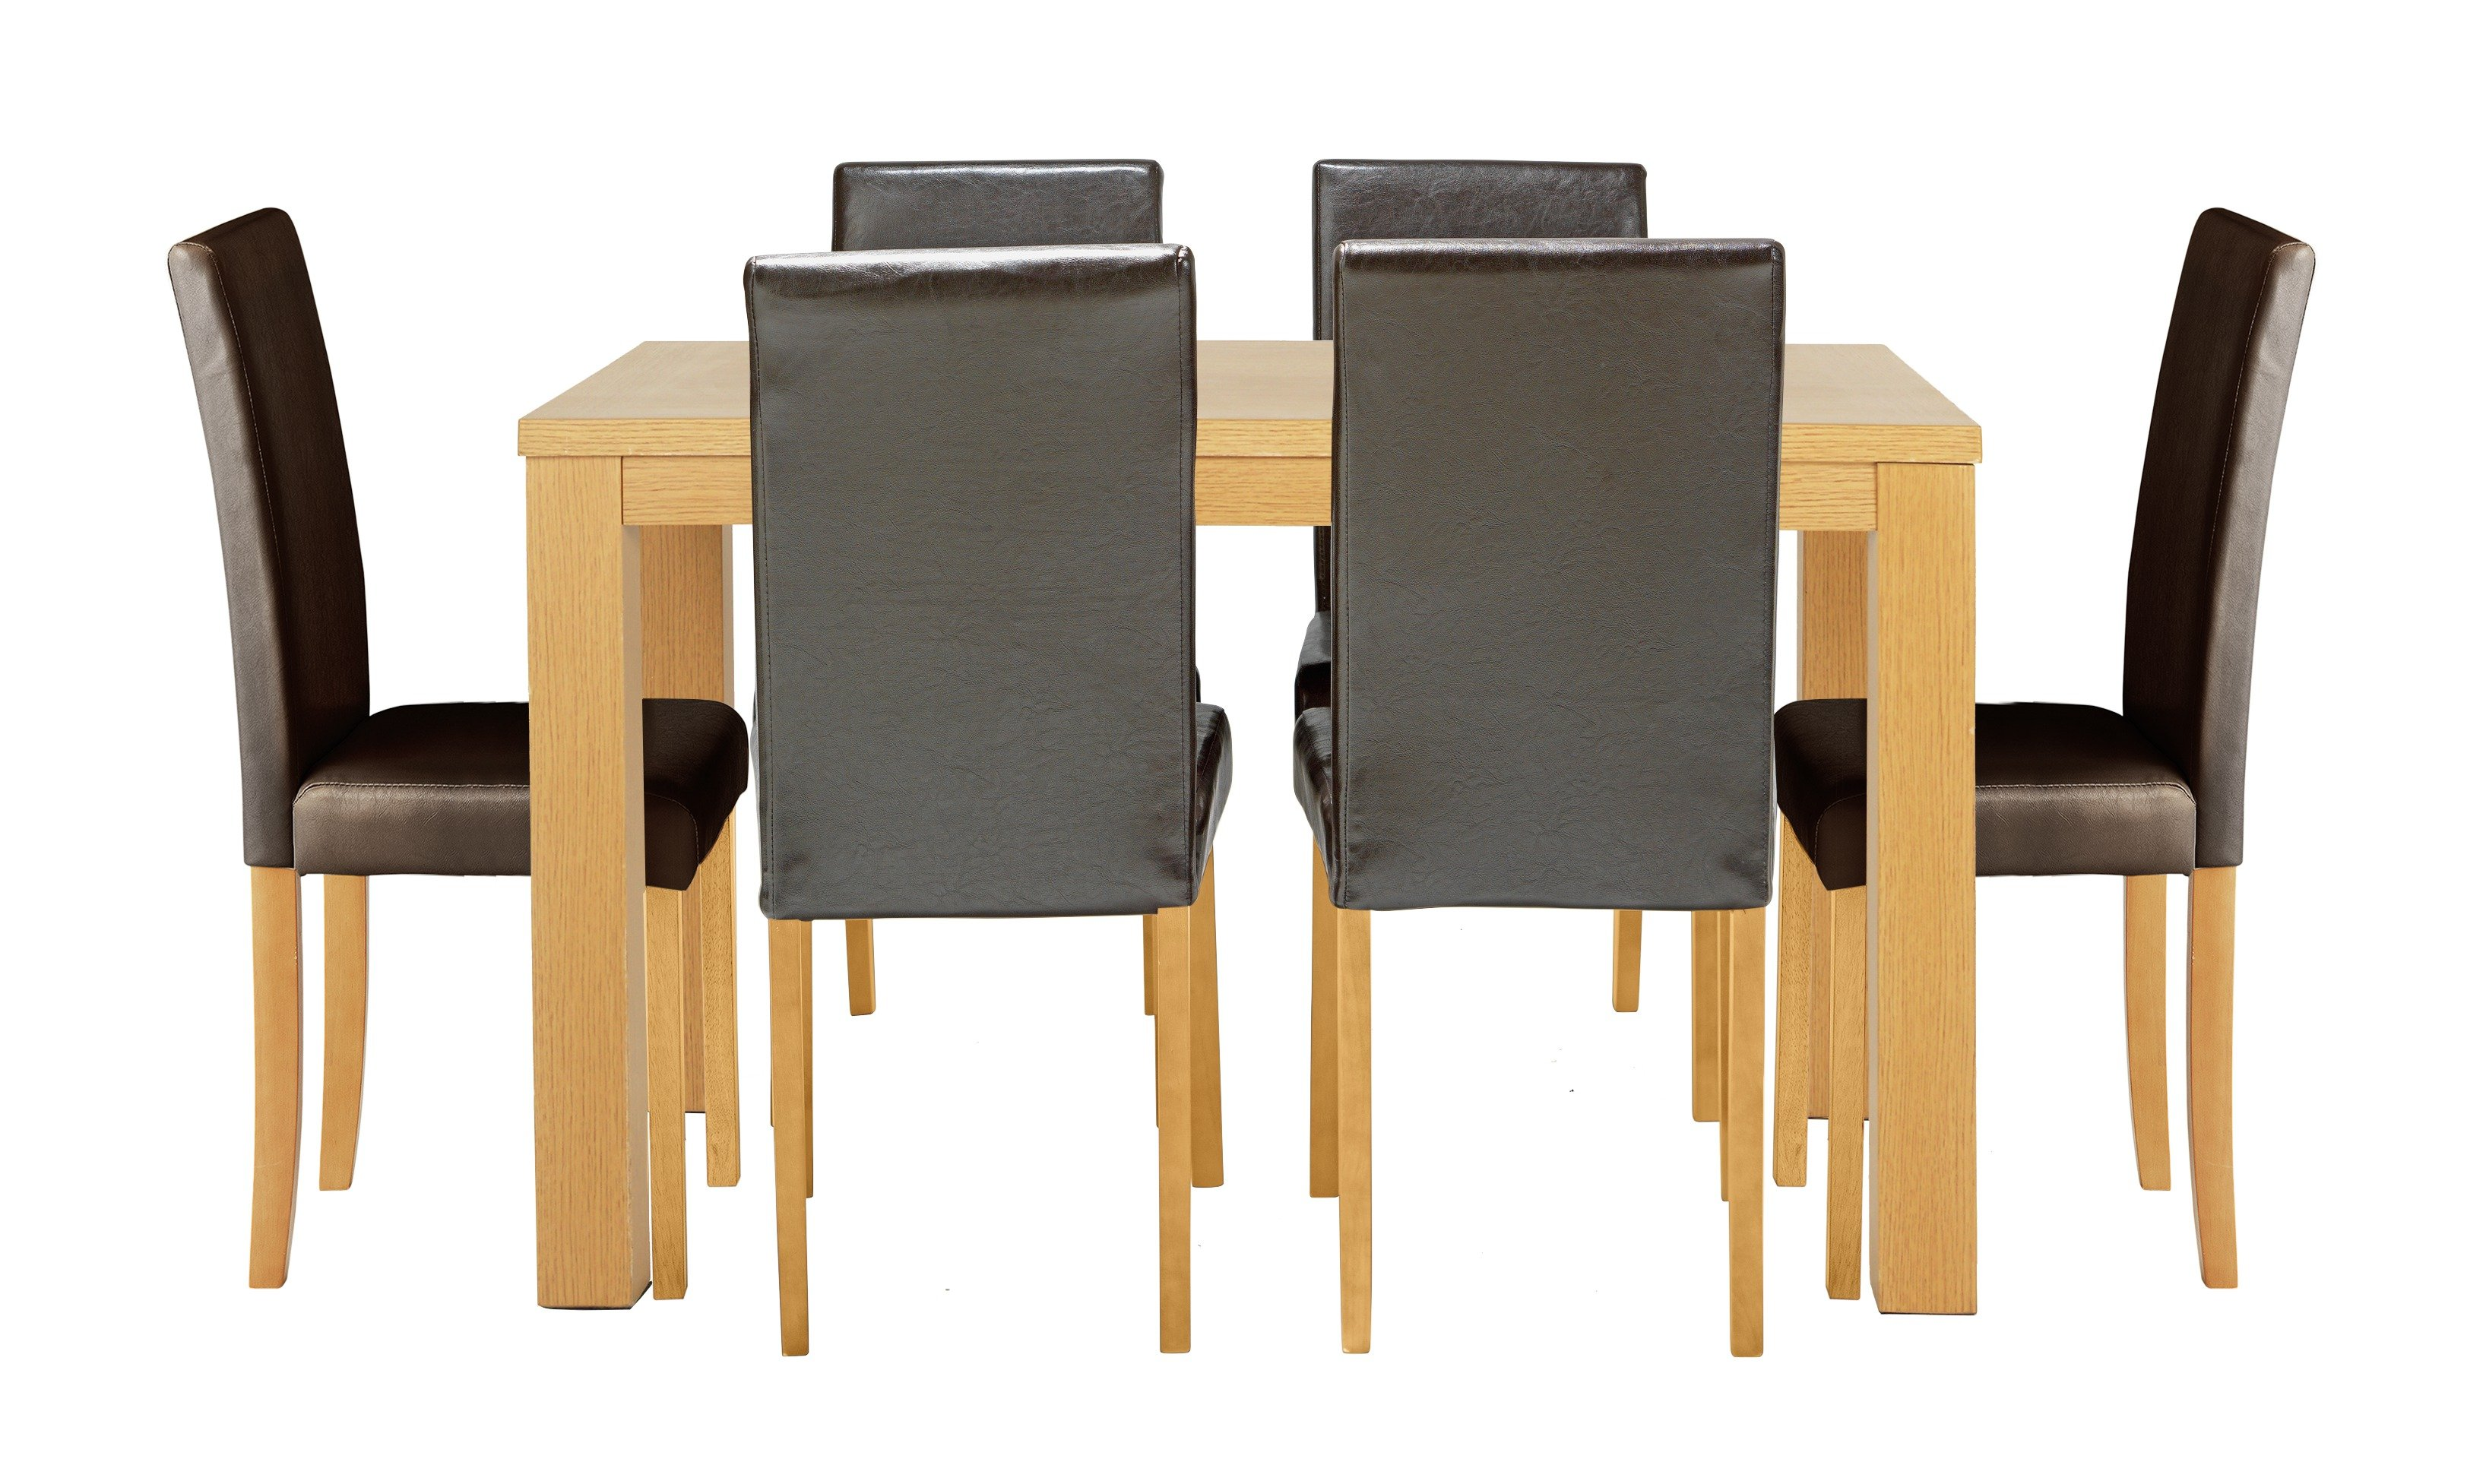 Buy HOME Pemberton Oak Veneer Dining Table 6 Chairs Black at